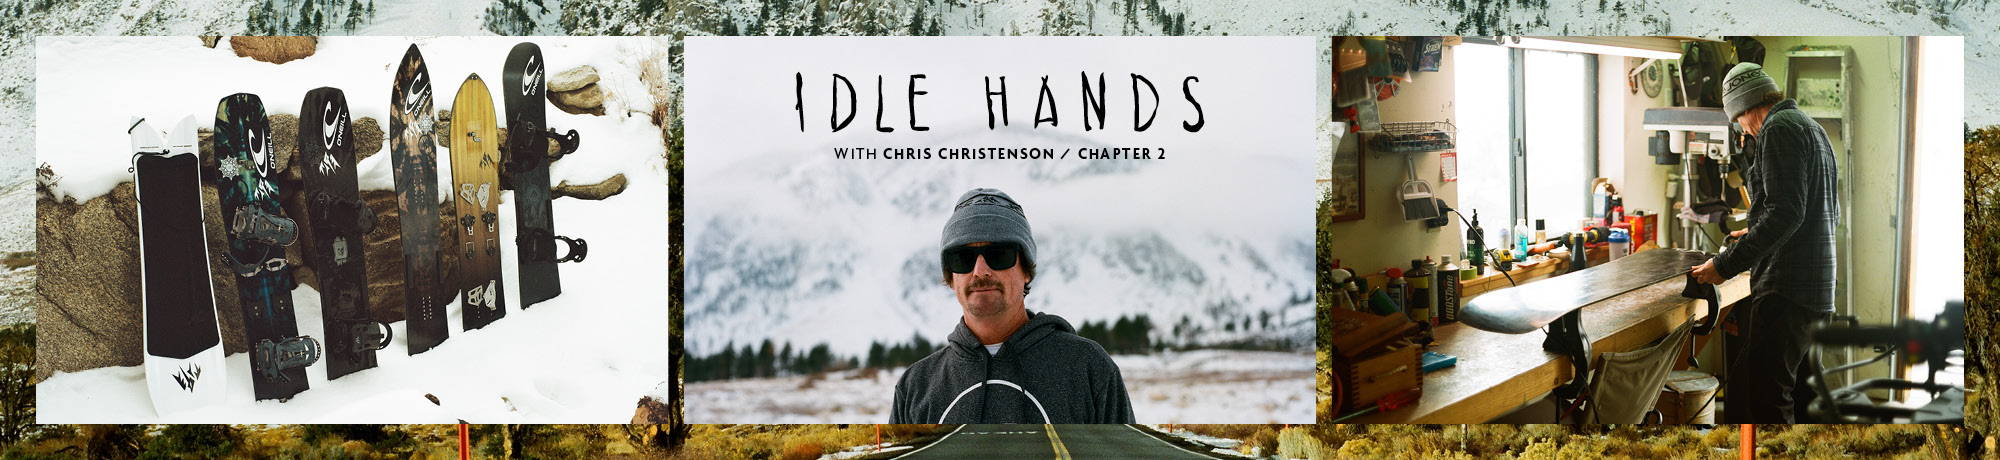 Idle Hands with Chris Christenson - Chapter 2